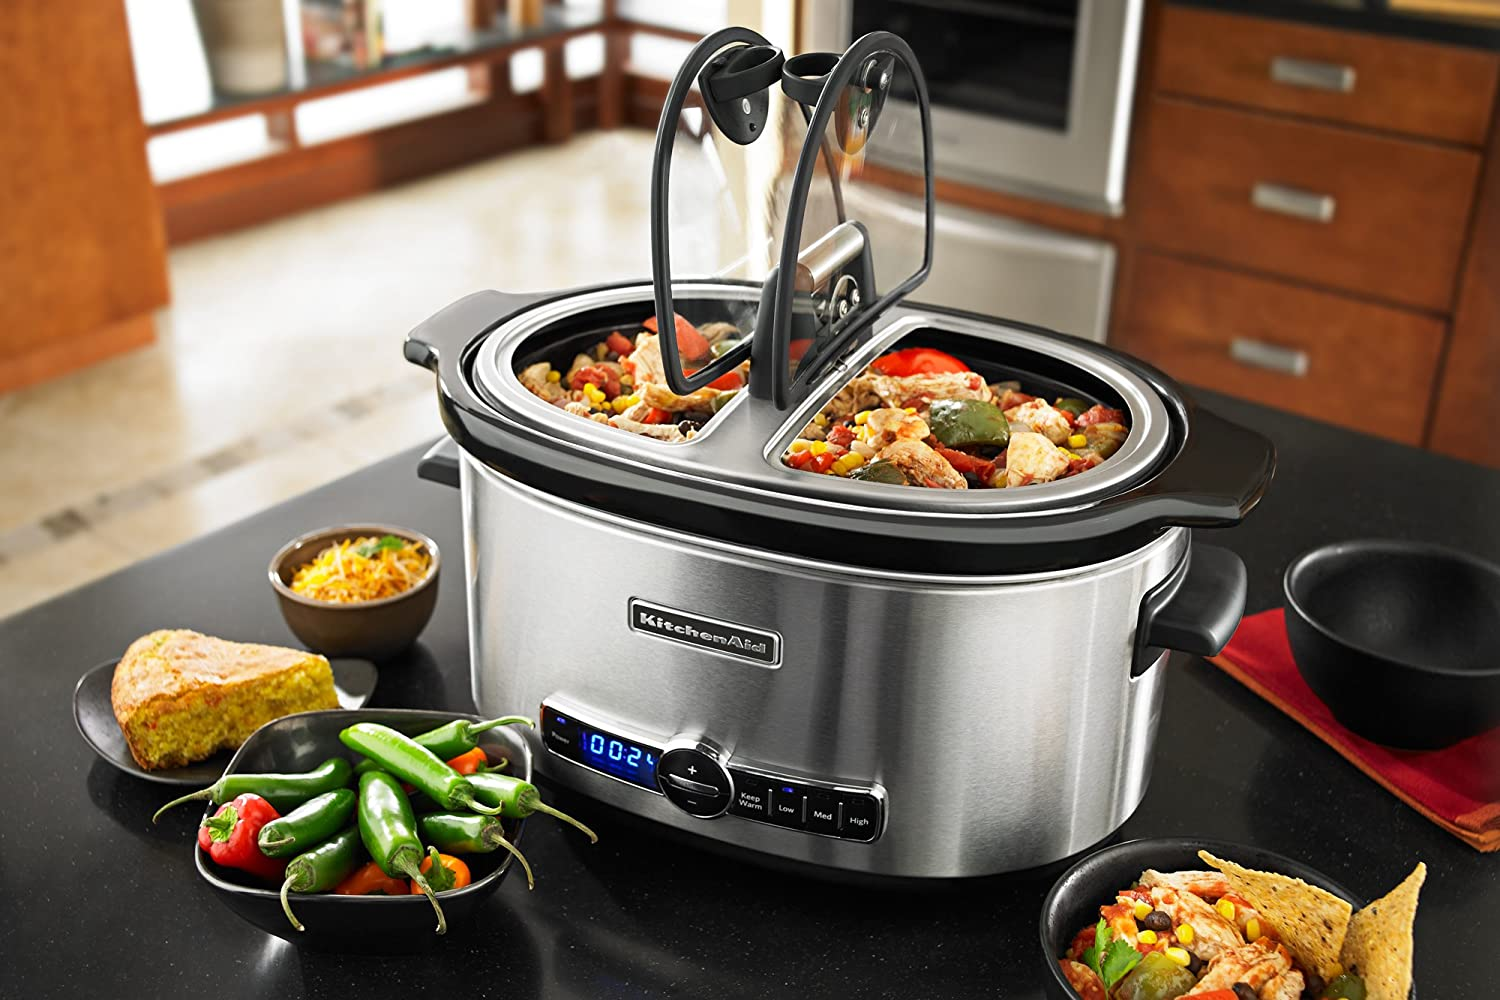 KitchenAid Slow Cooker ONLY $4...